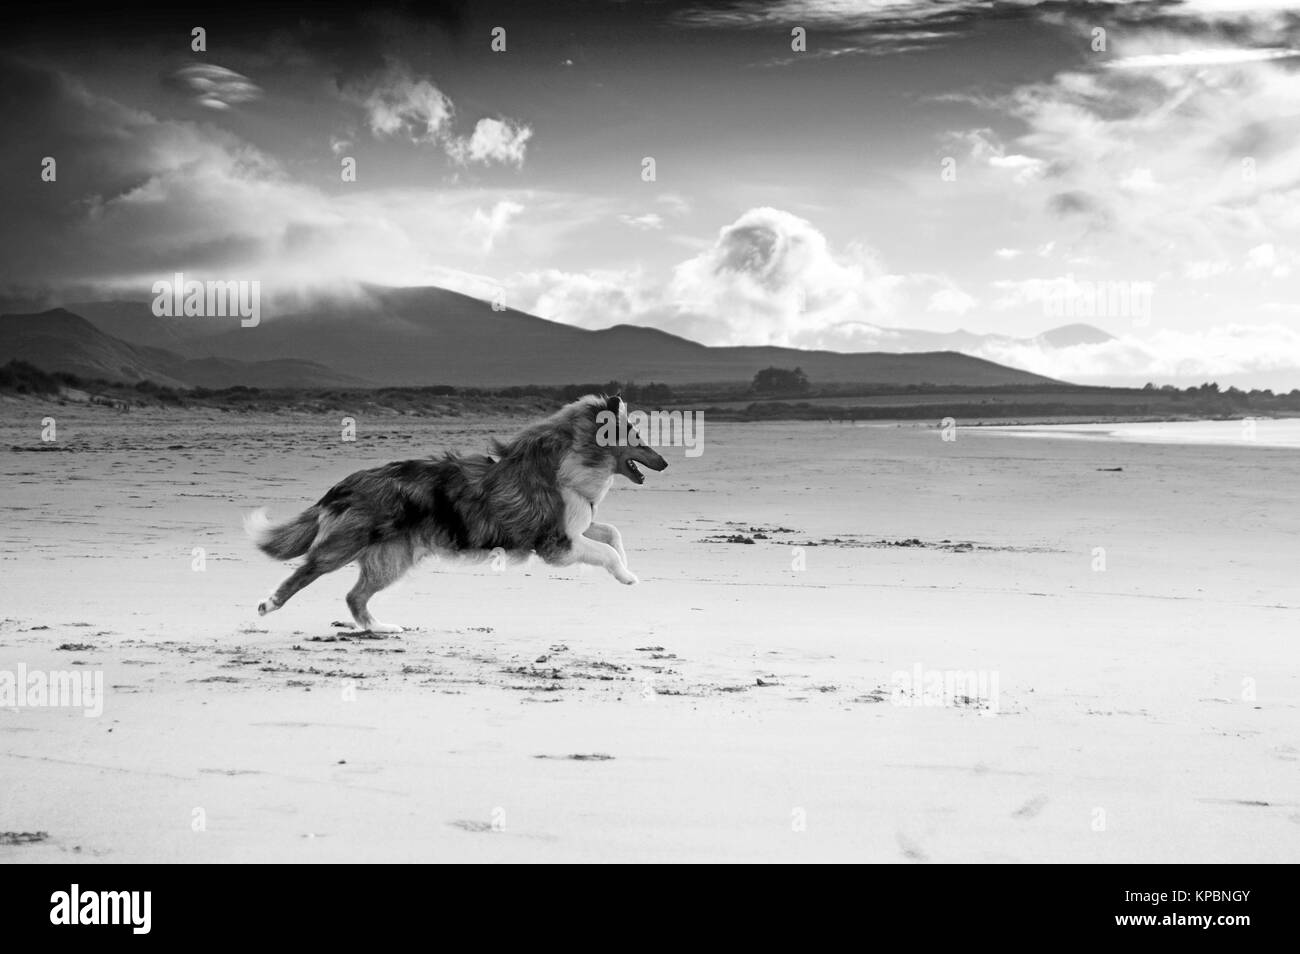 Rough collie dog running along beach in Dingle, Ireland. Black and white image with clouds falling over mountain - Stock Image